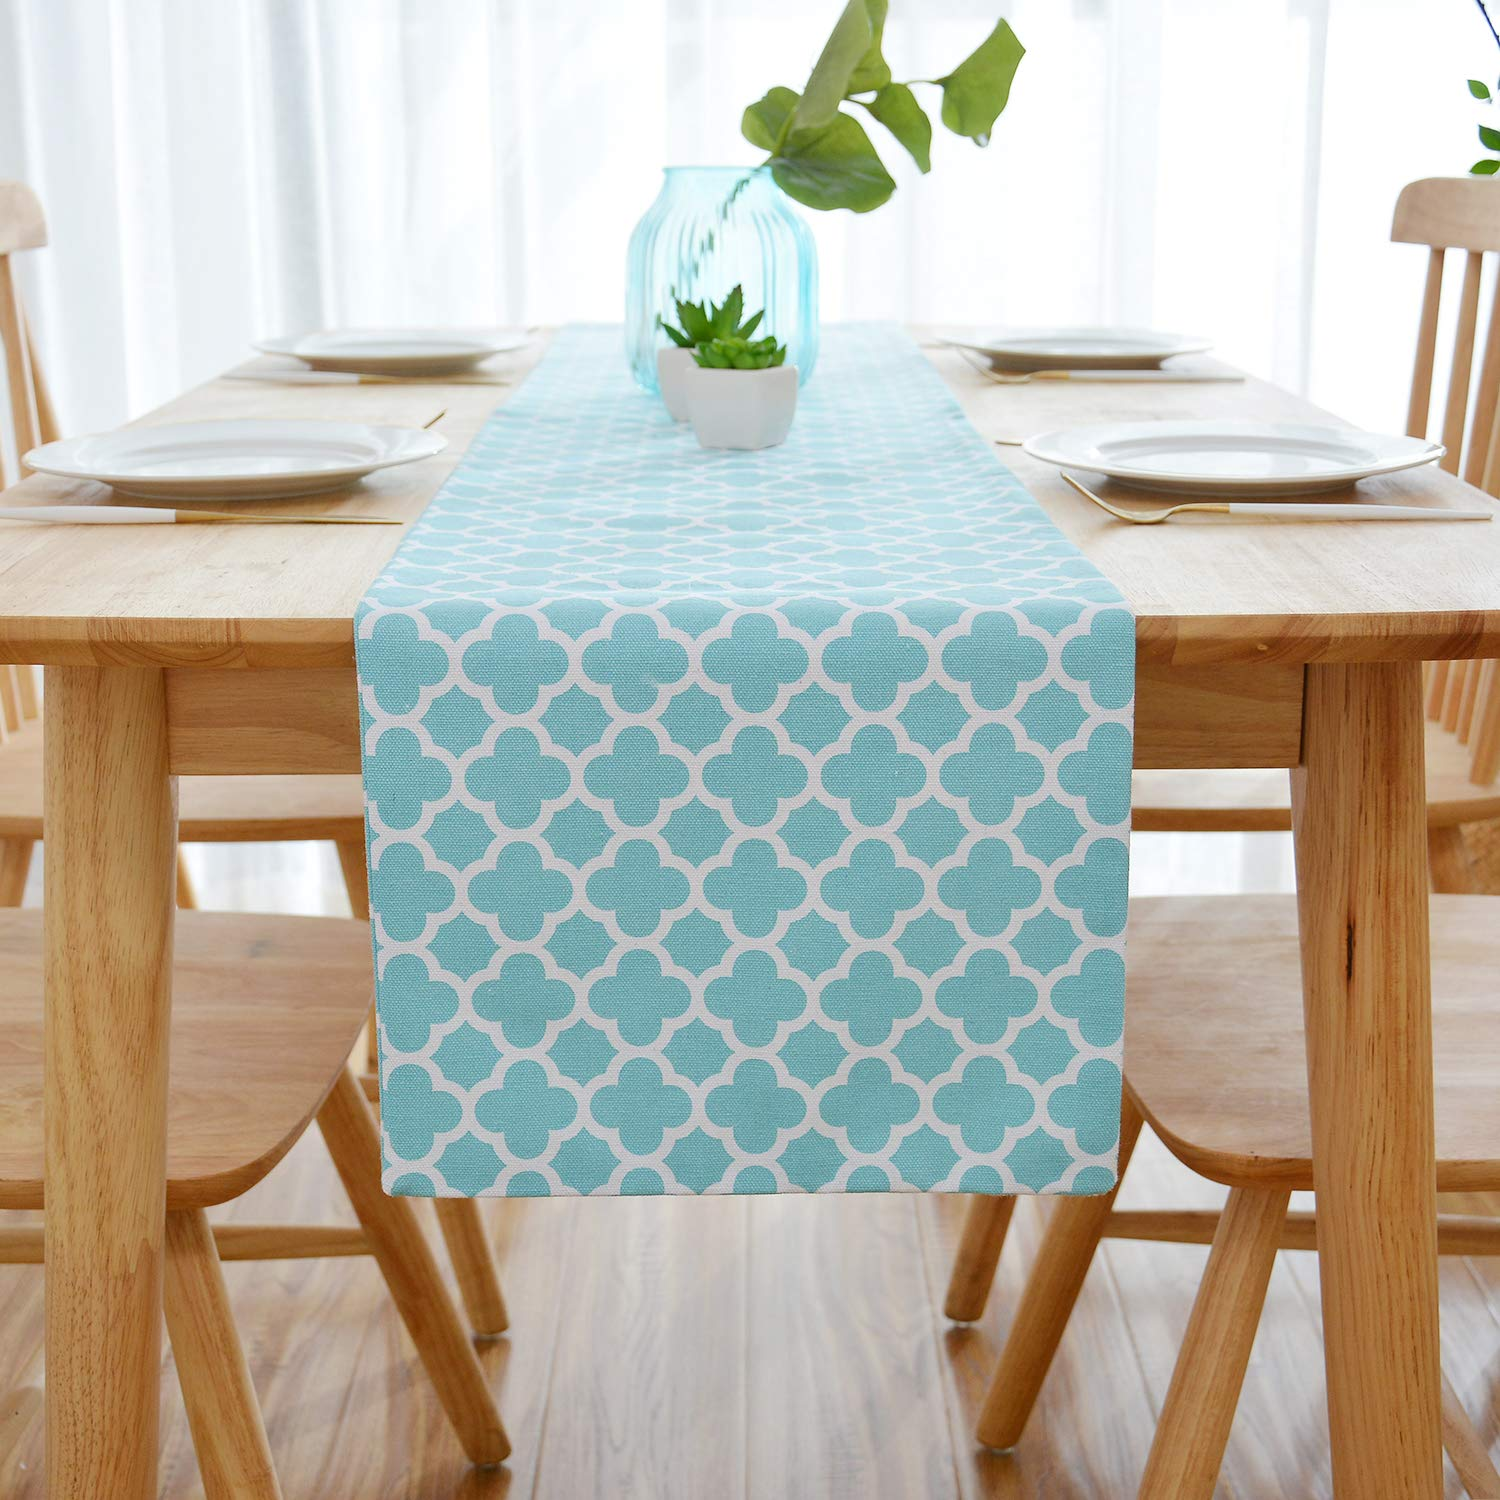 NATUS WEAVER Lattice Cotton Table Runner for Dining Room, Foyer Table, Summer Parties and Everyday Use - 12 x 72, Teal